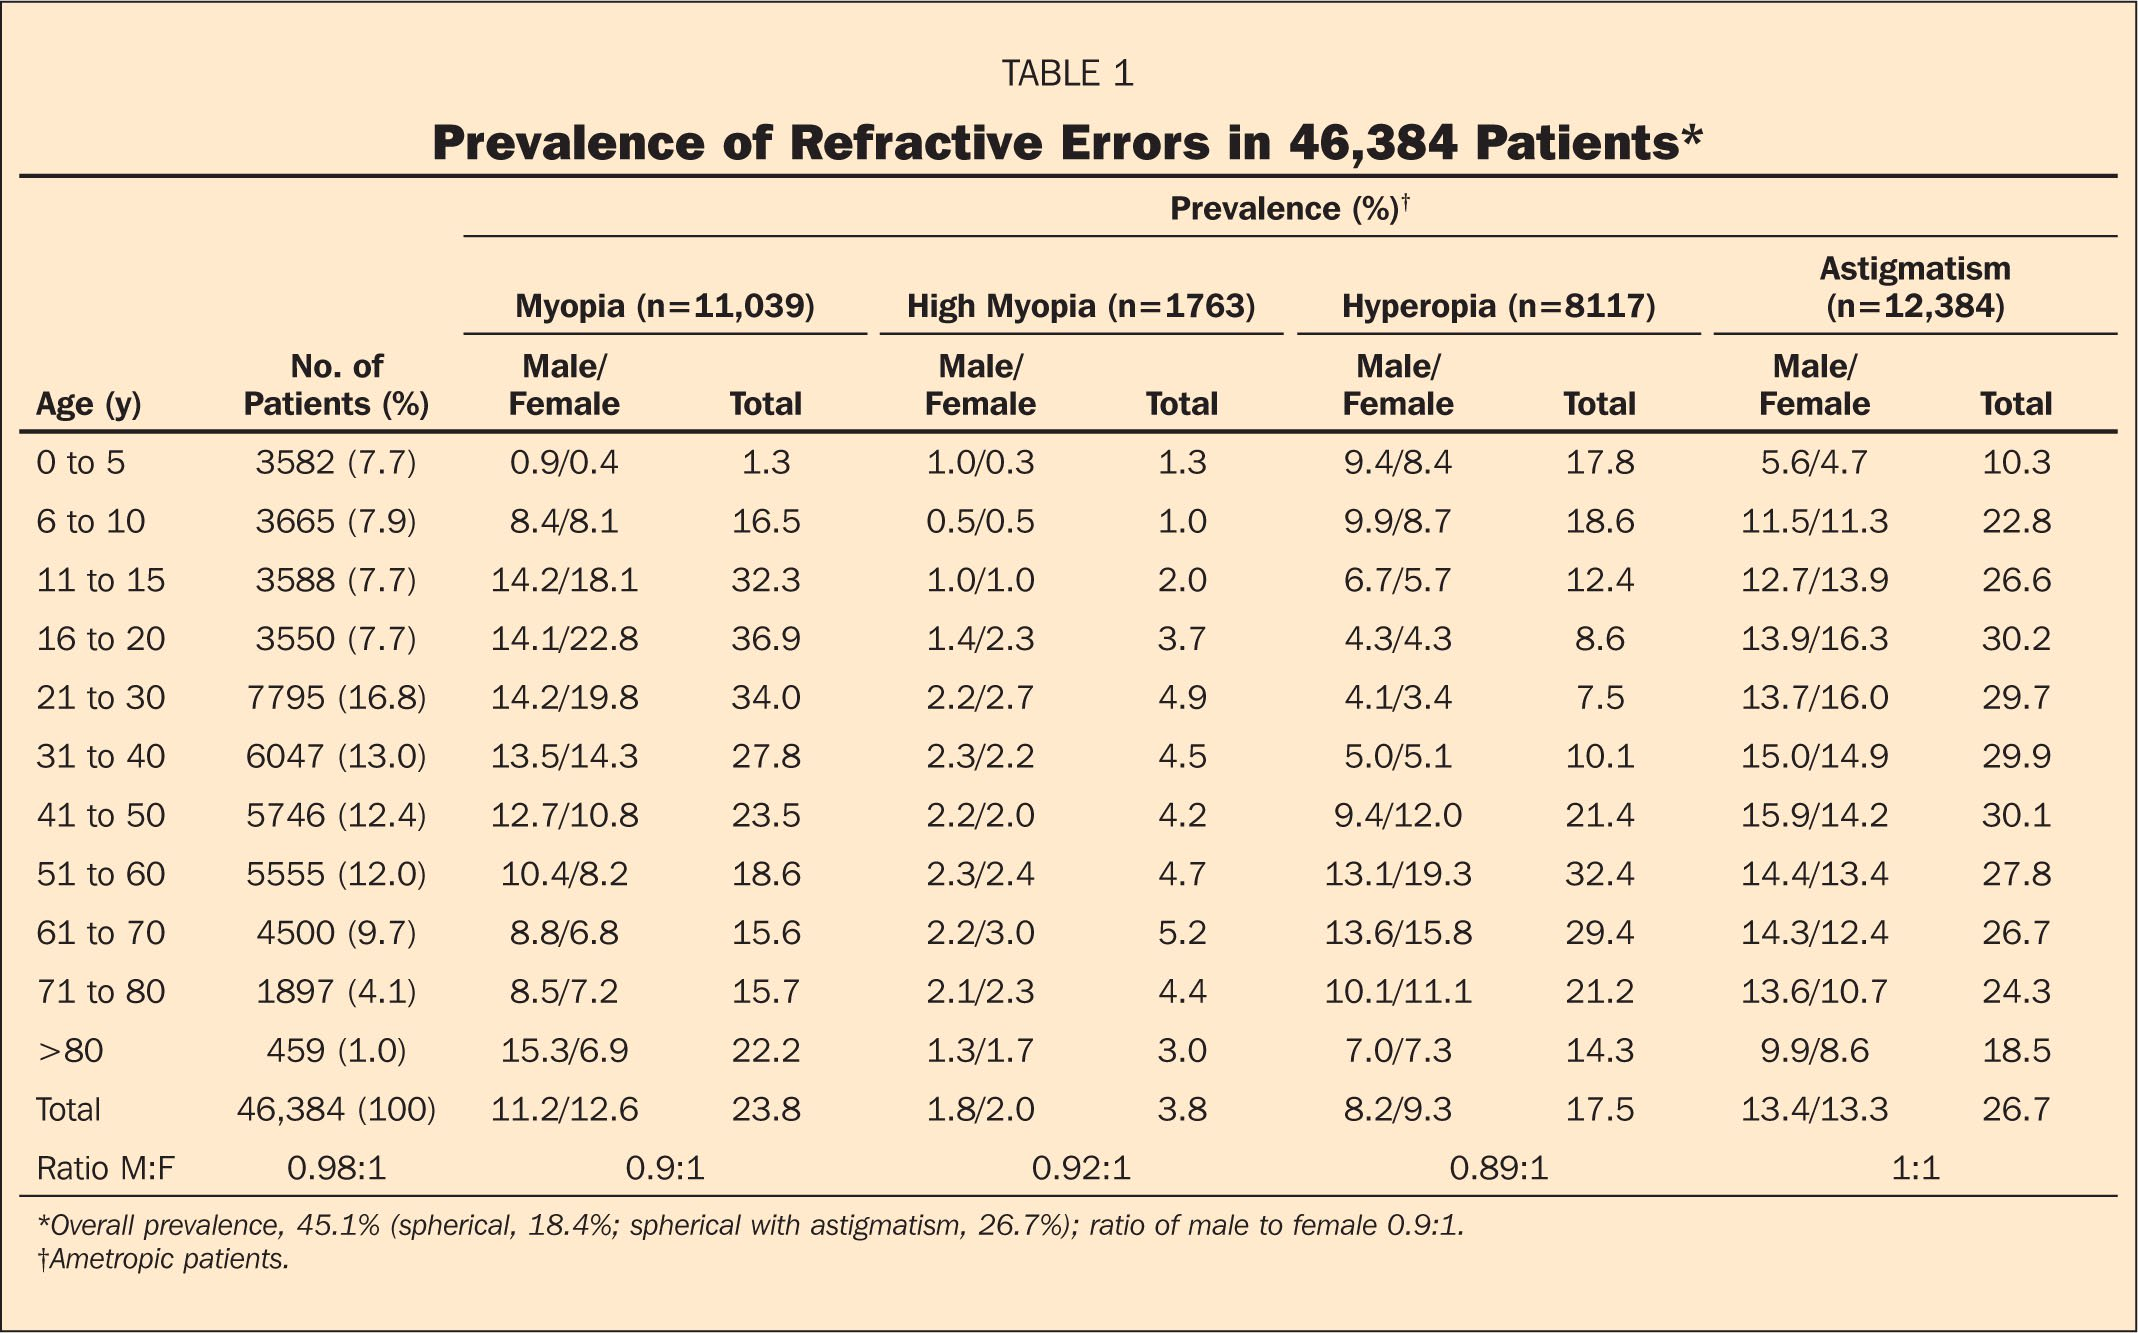 Prevalence of Refractive Errors in 46,384 Patients*